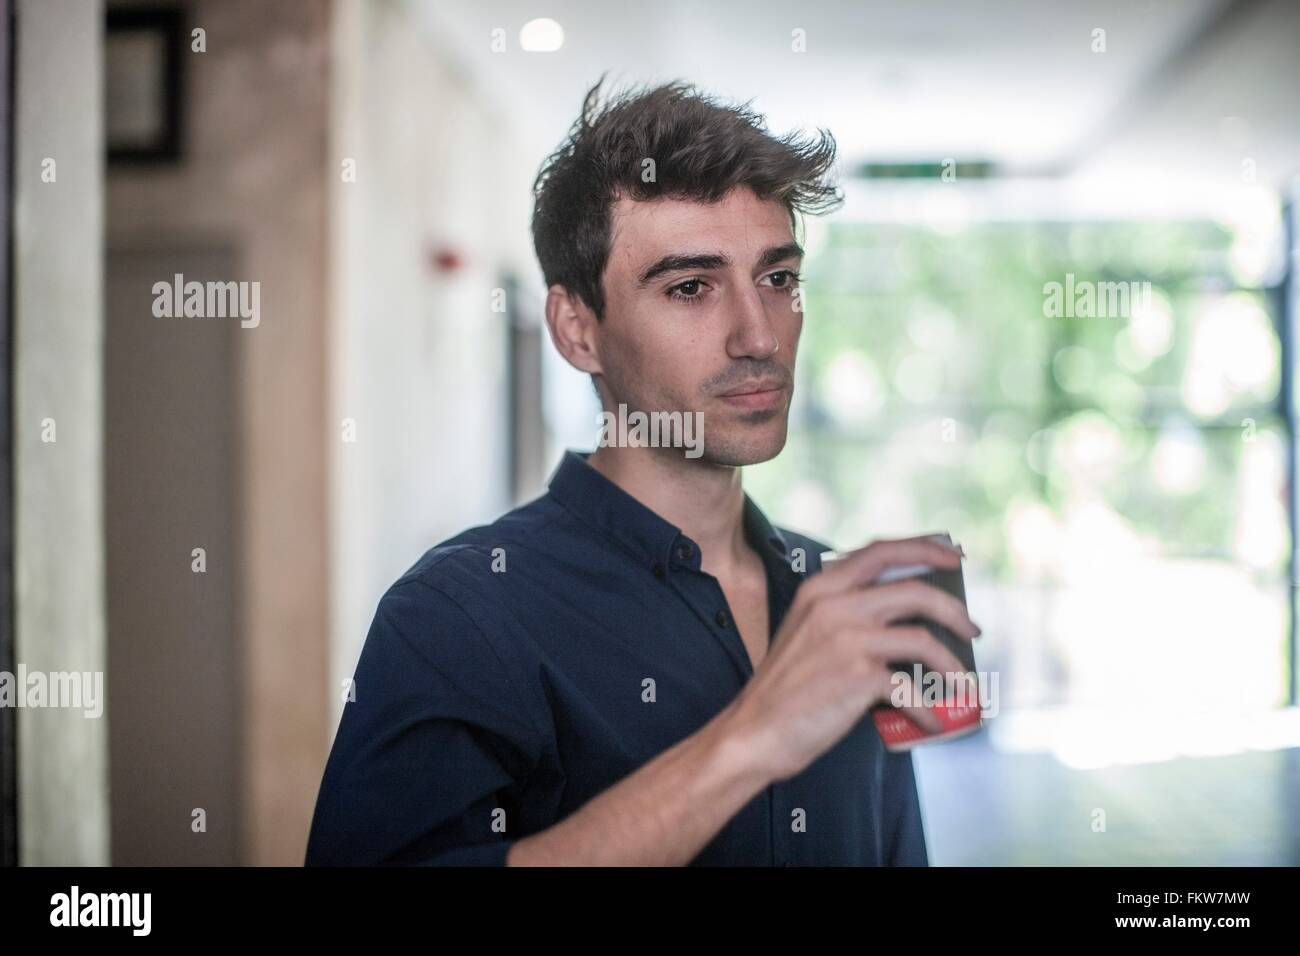 Serious young businessman drinking takeaway coffee in office - Stock Image